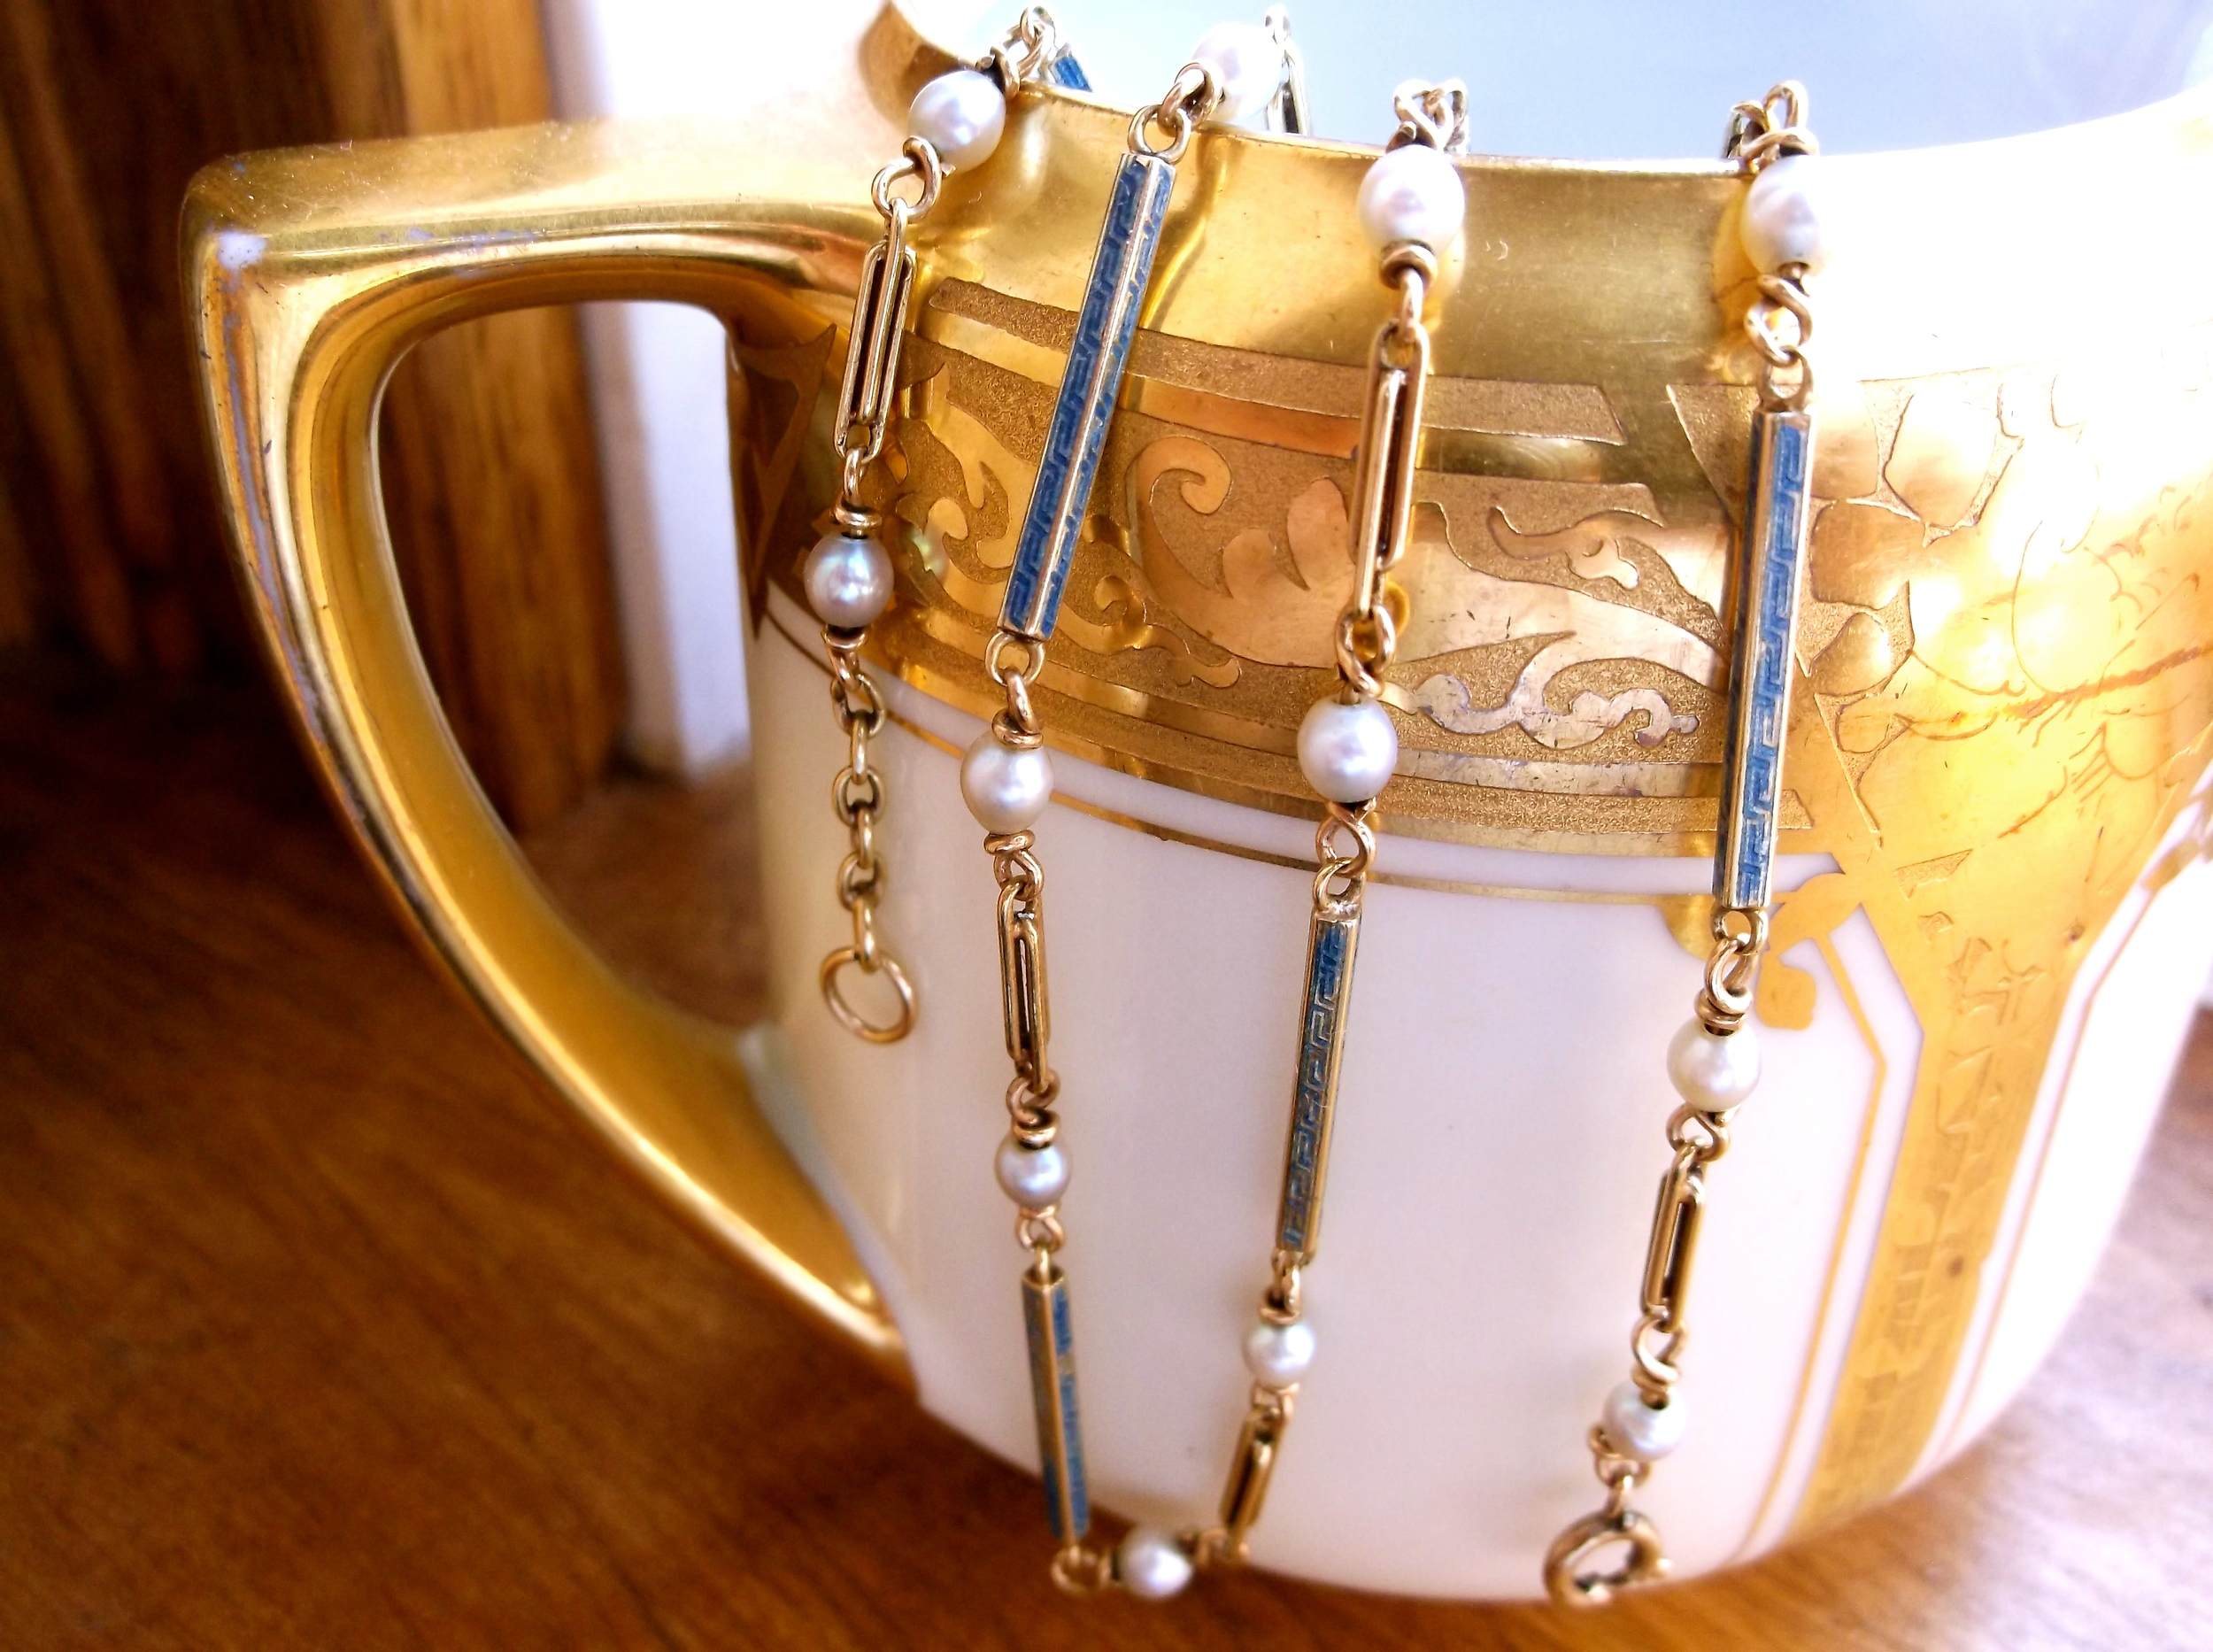 "SOLD - Artfully crafted 1920's gold, pearl and blue enamel watch chain that doubles beautifully as a necklace! (Approximately 16.5"" in length.)"